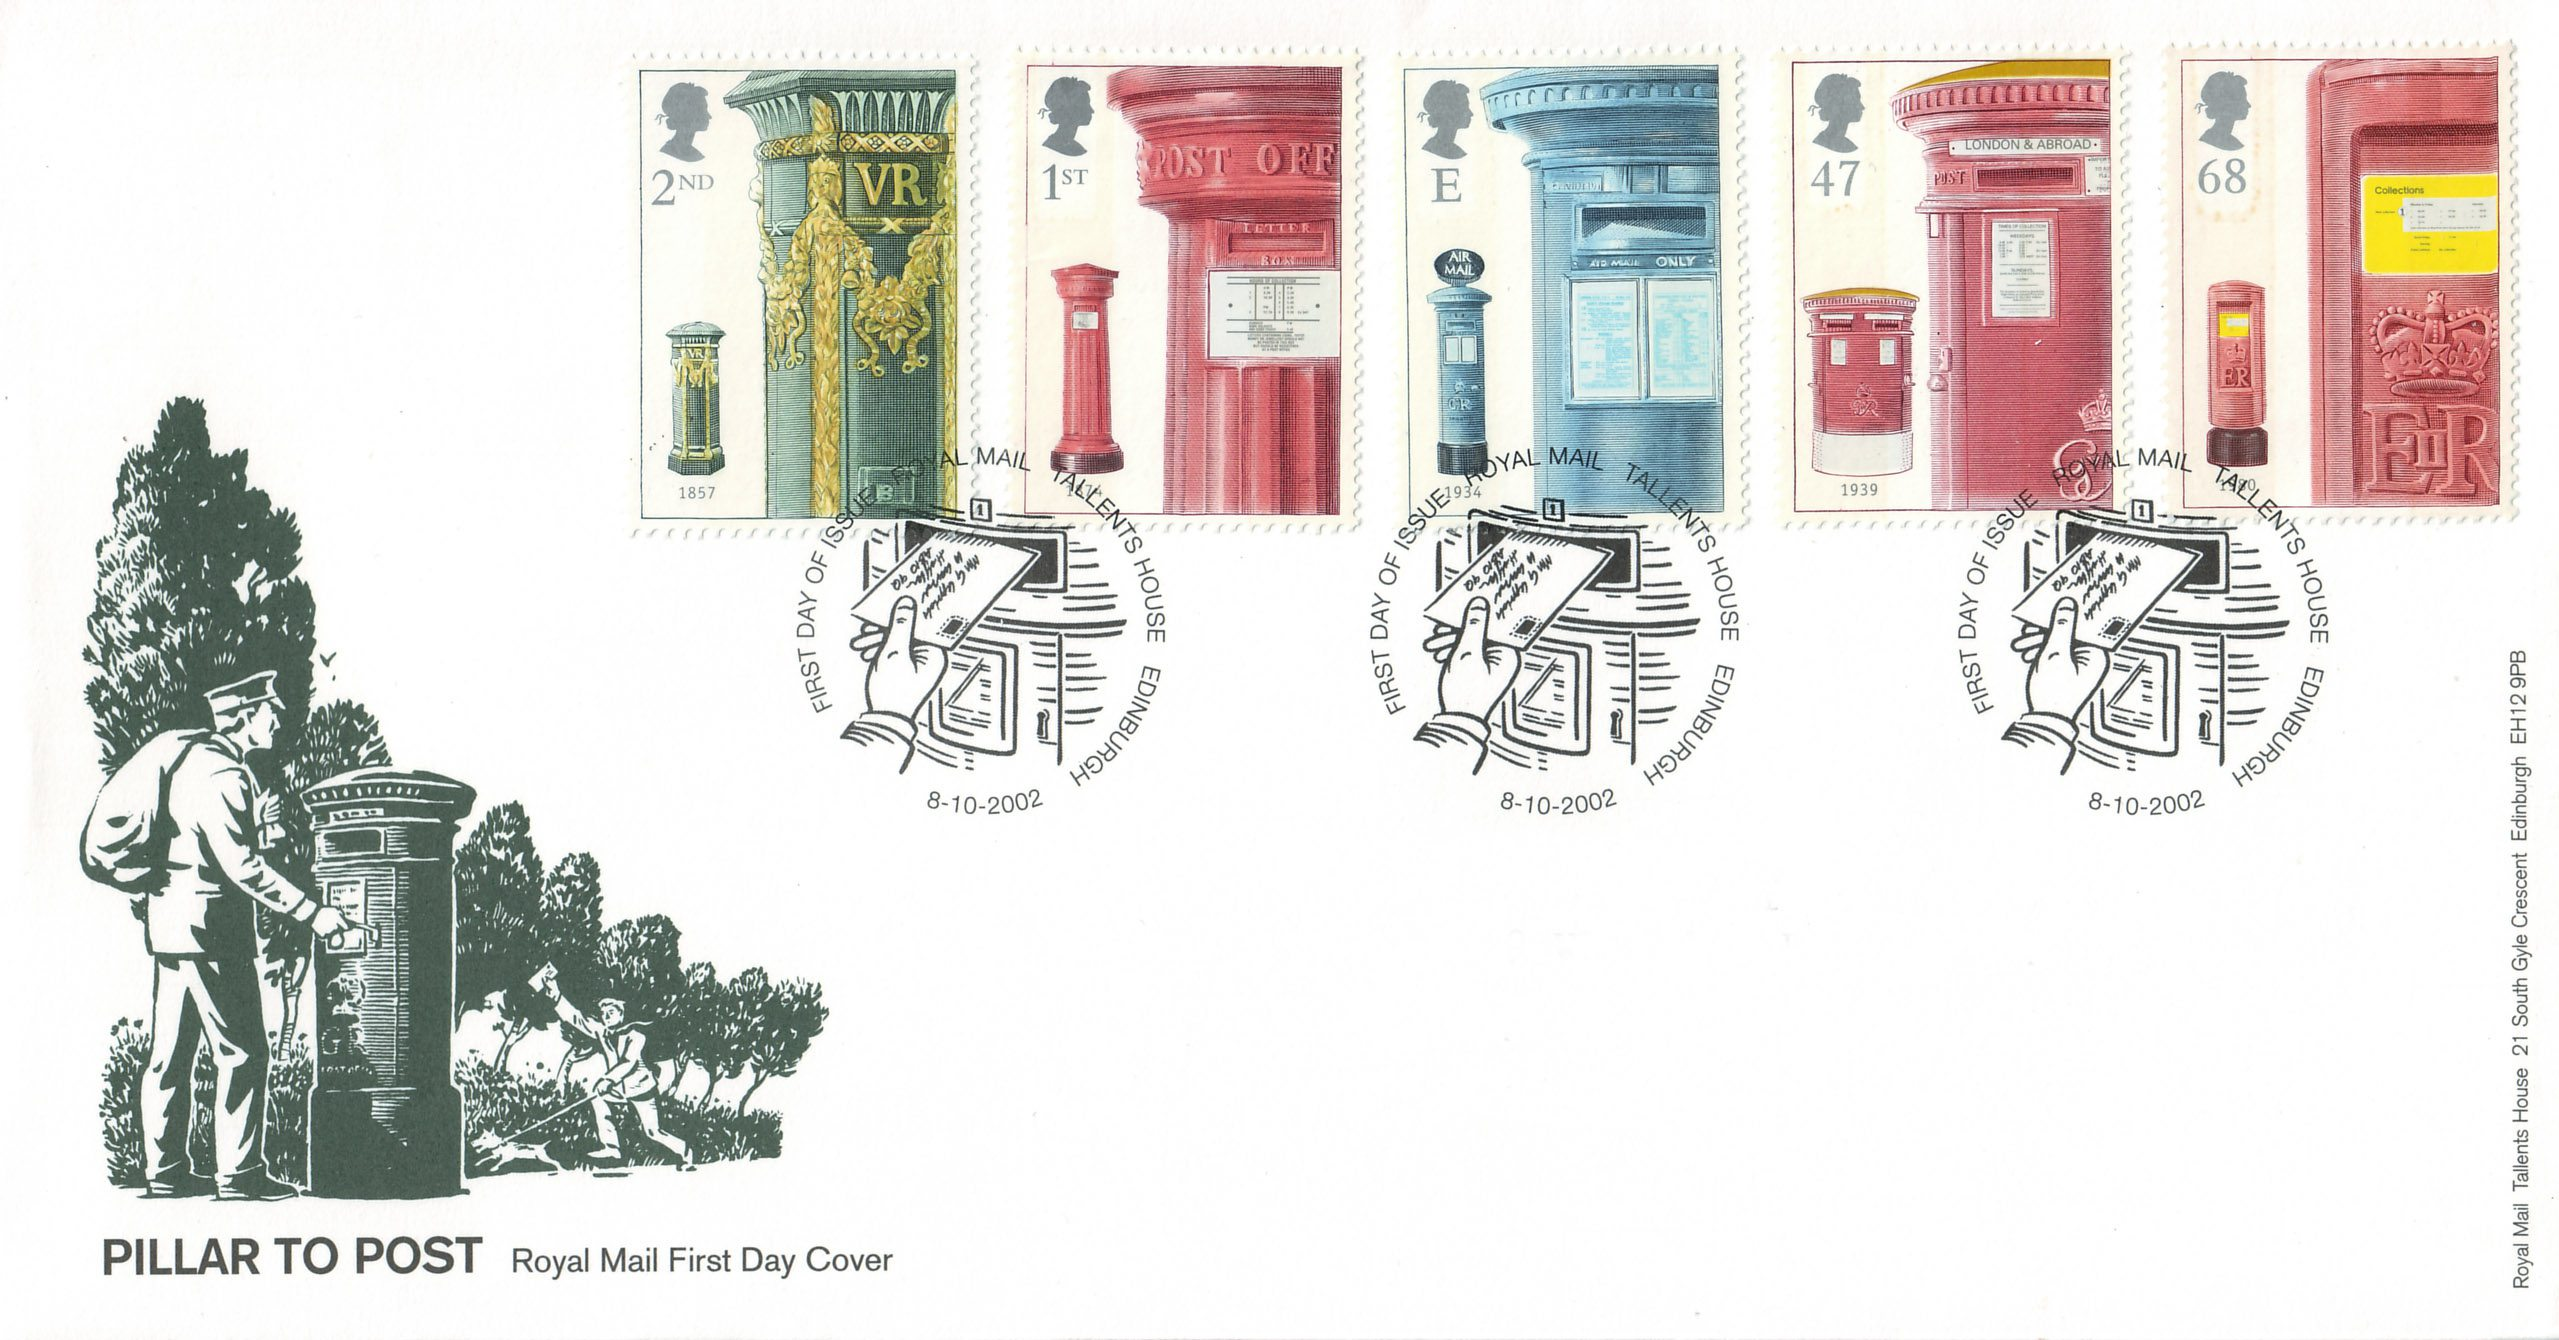 Great Britain - Scott #2076-2080 (2002) first day cover